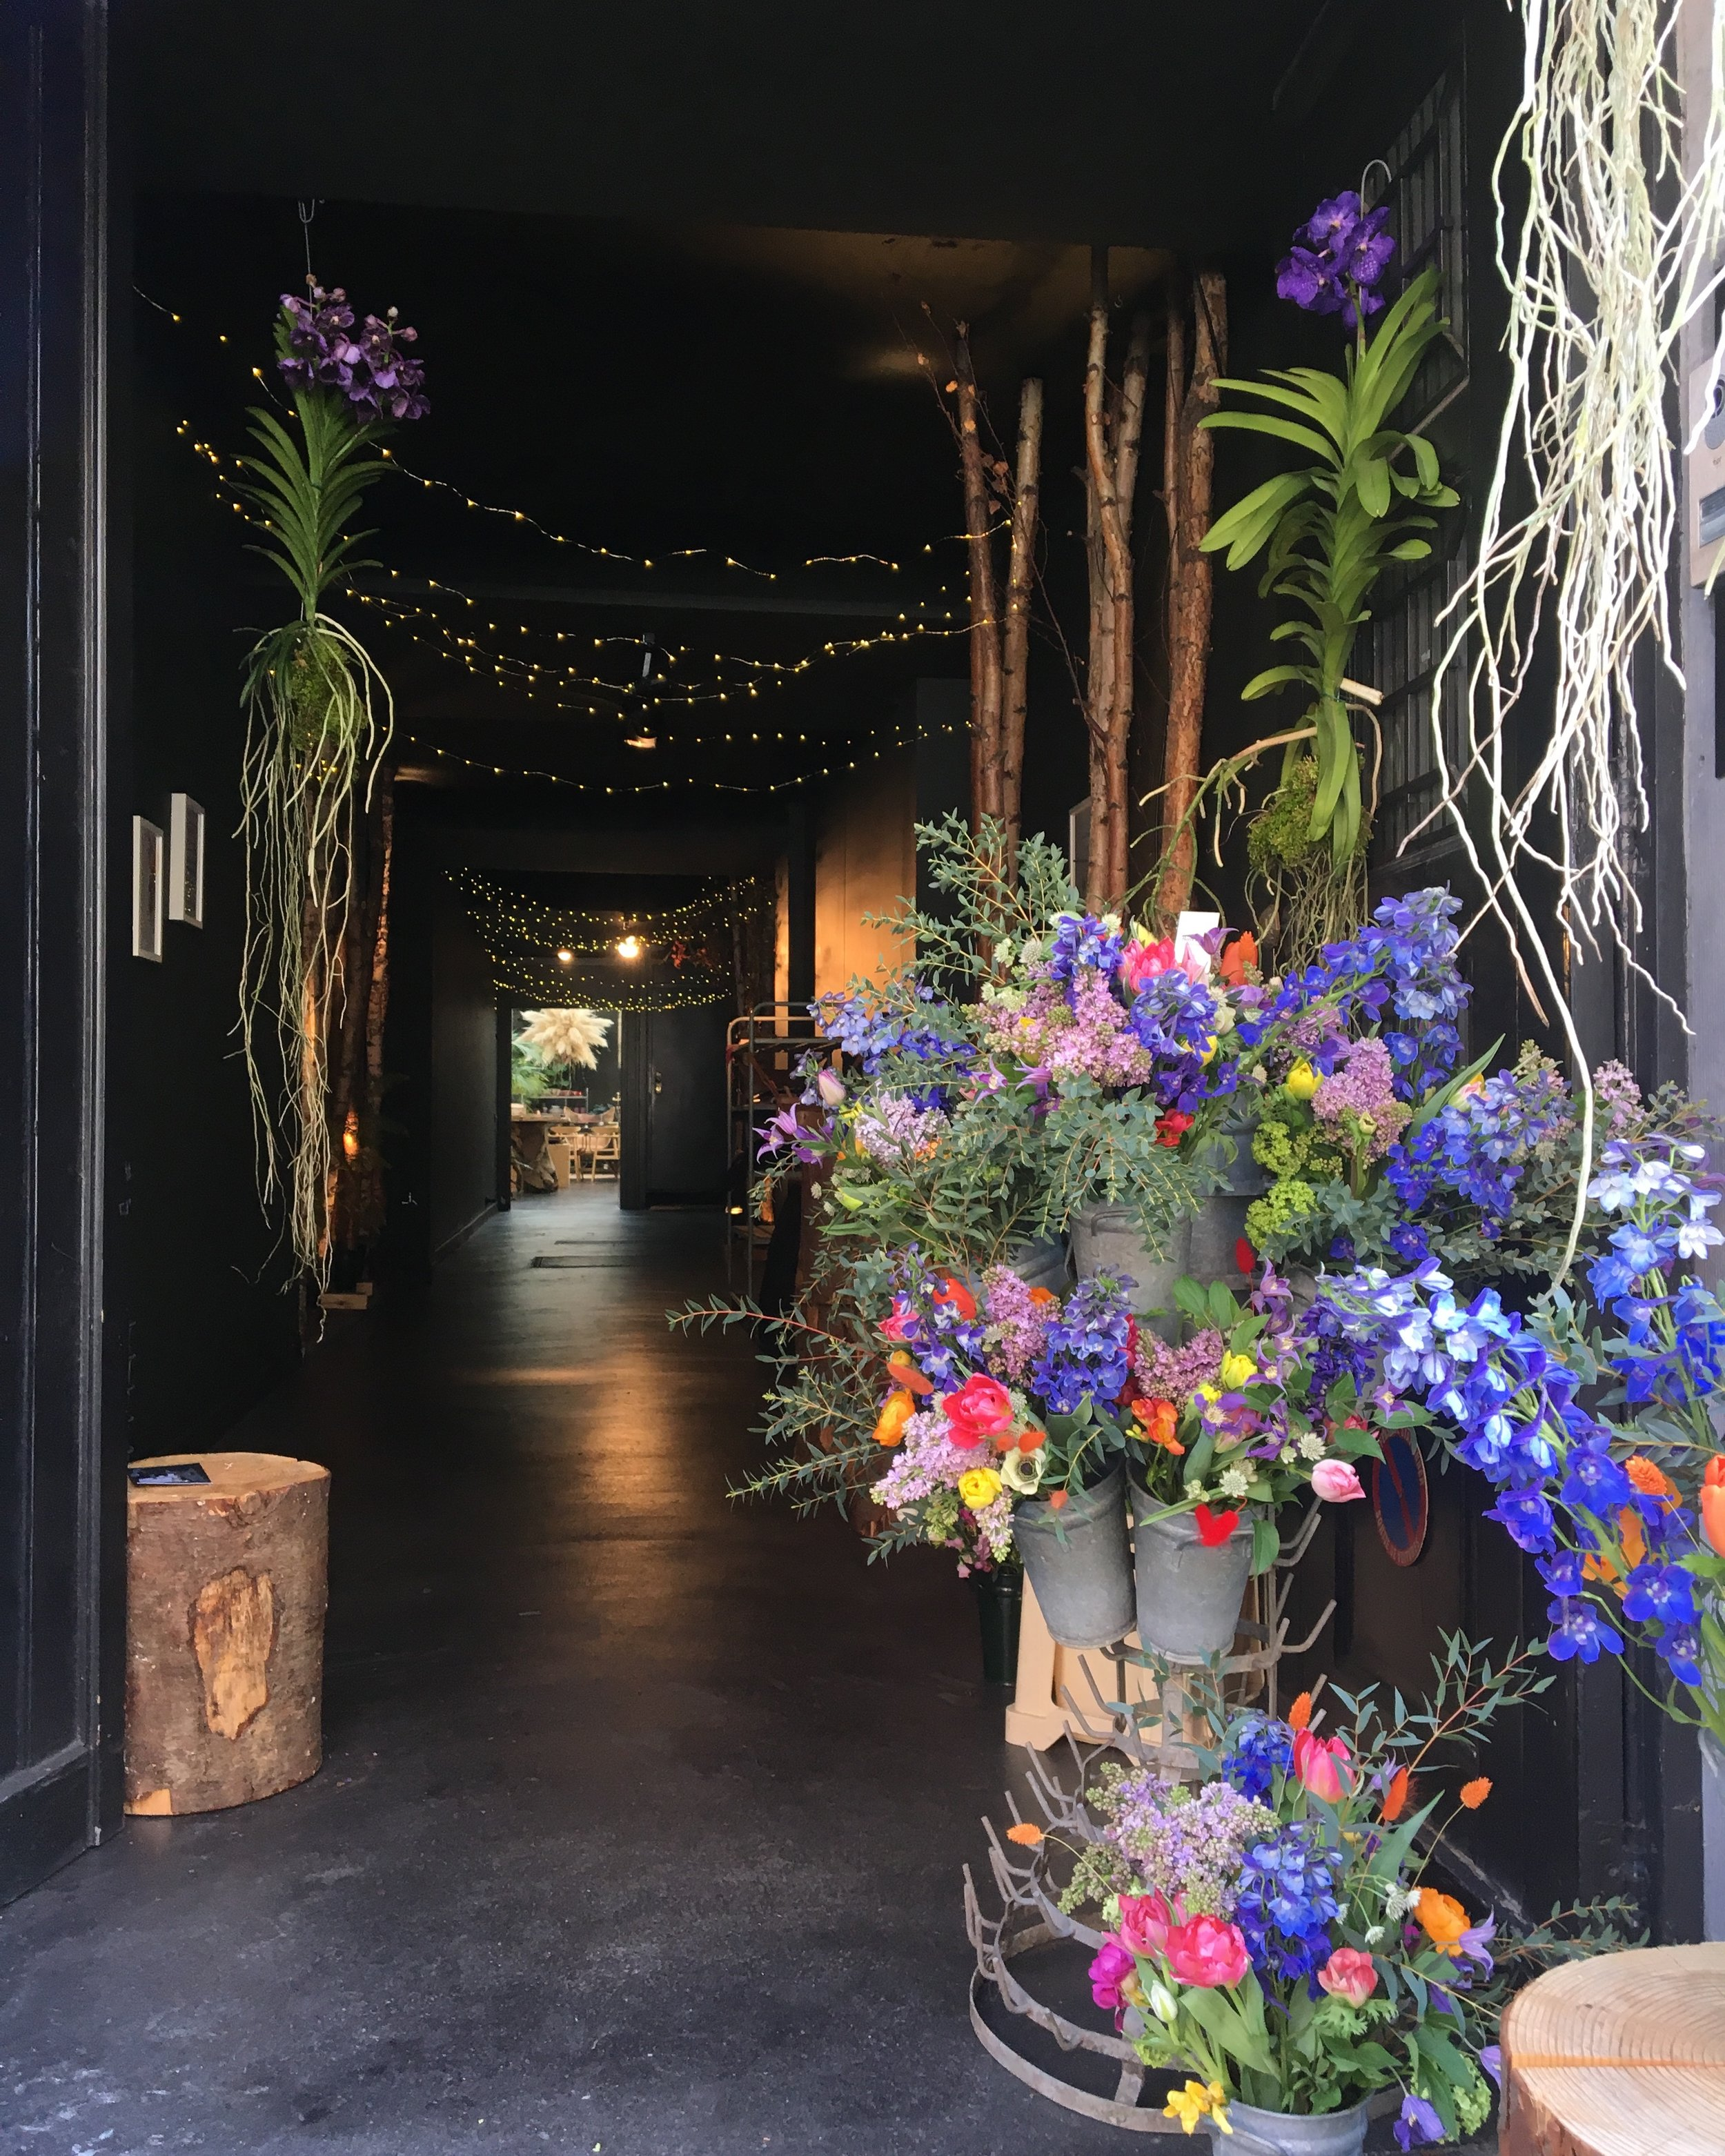 march | april | may 2019 flower pop up - by Horty poetry at la forêt de lucia | 156 rue franz merjay . 1050 brussels